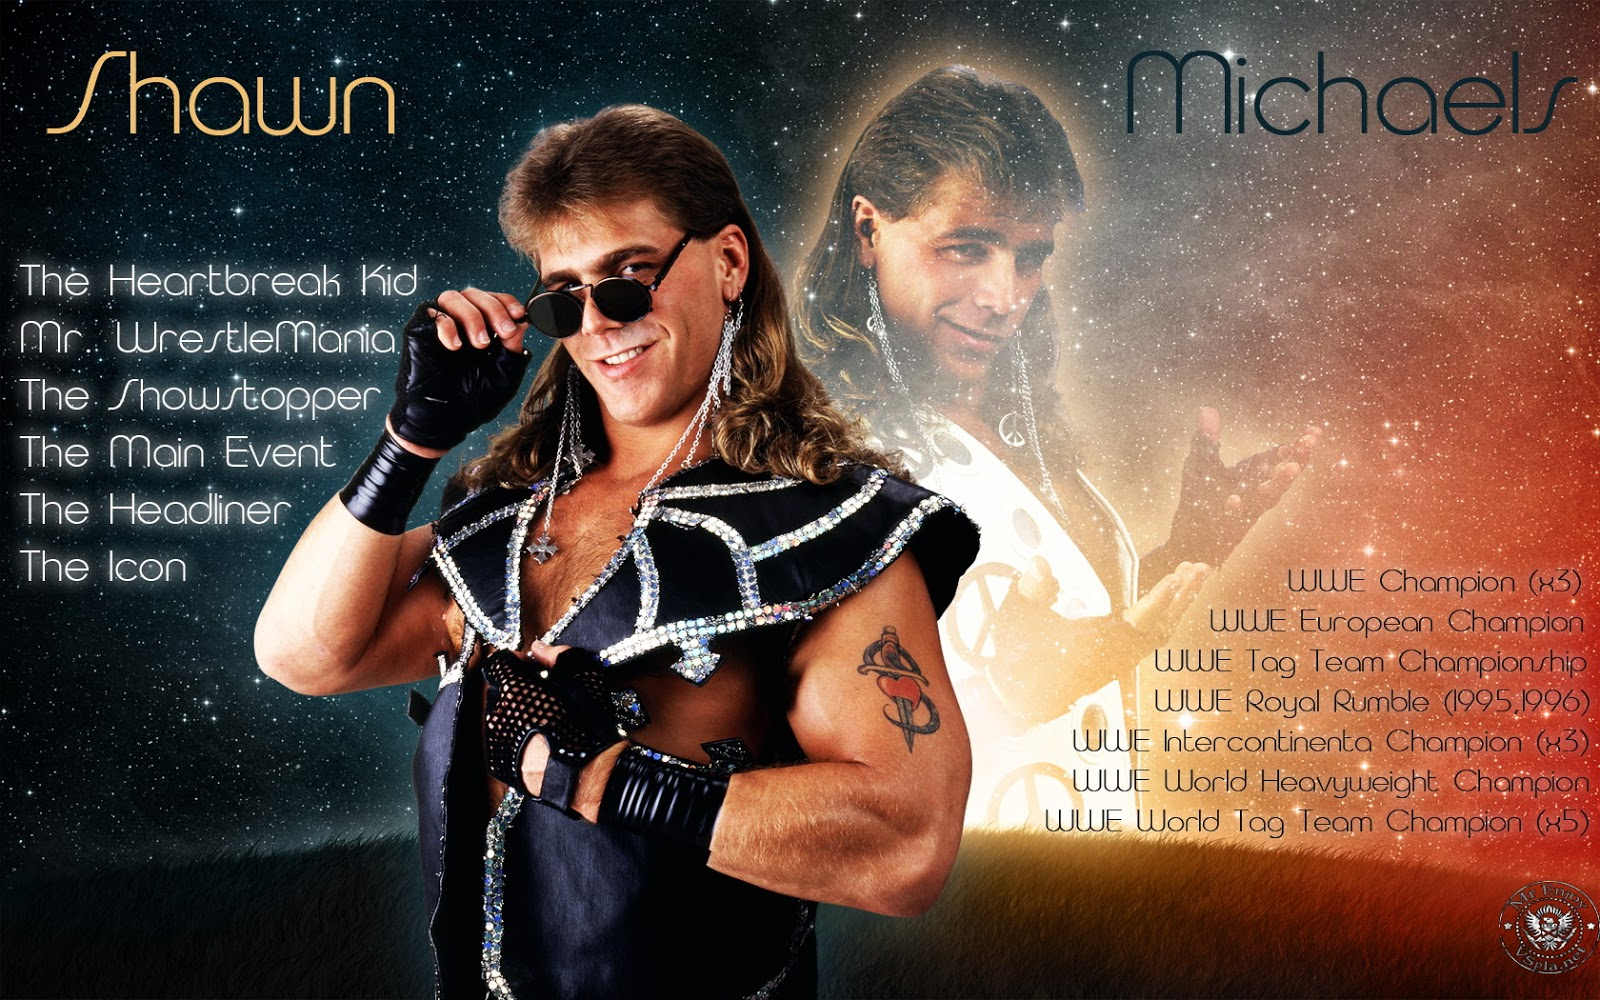 michaels wallpapers shawn michaels wallpaper shawn michaels wallpaper 1600x1000